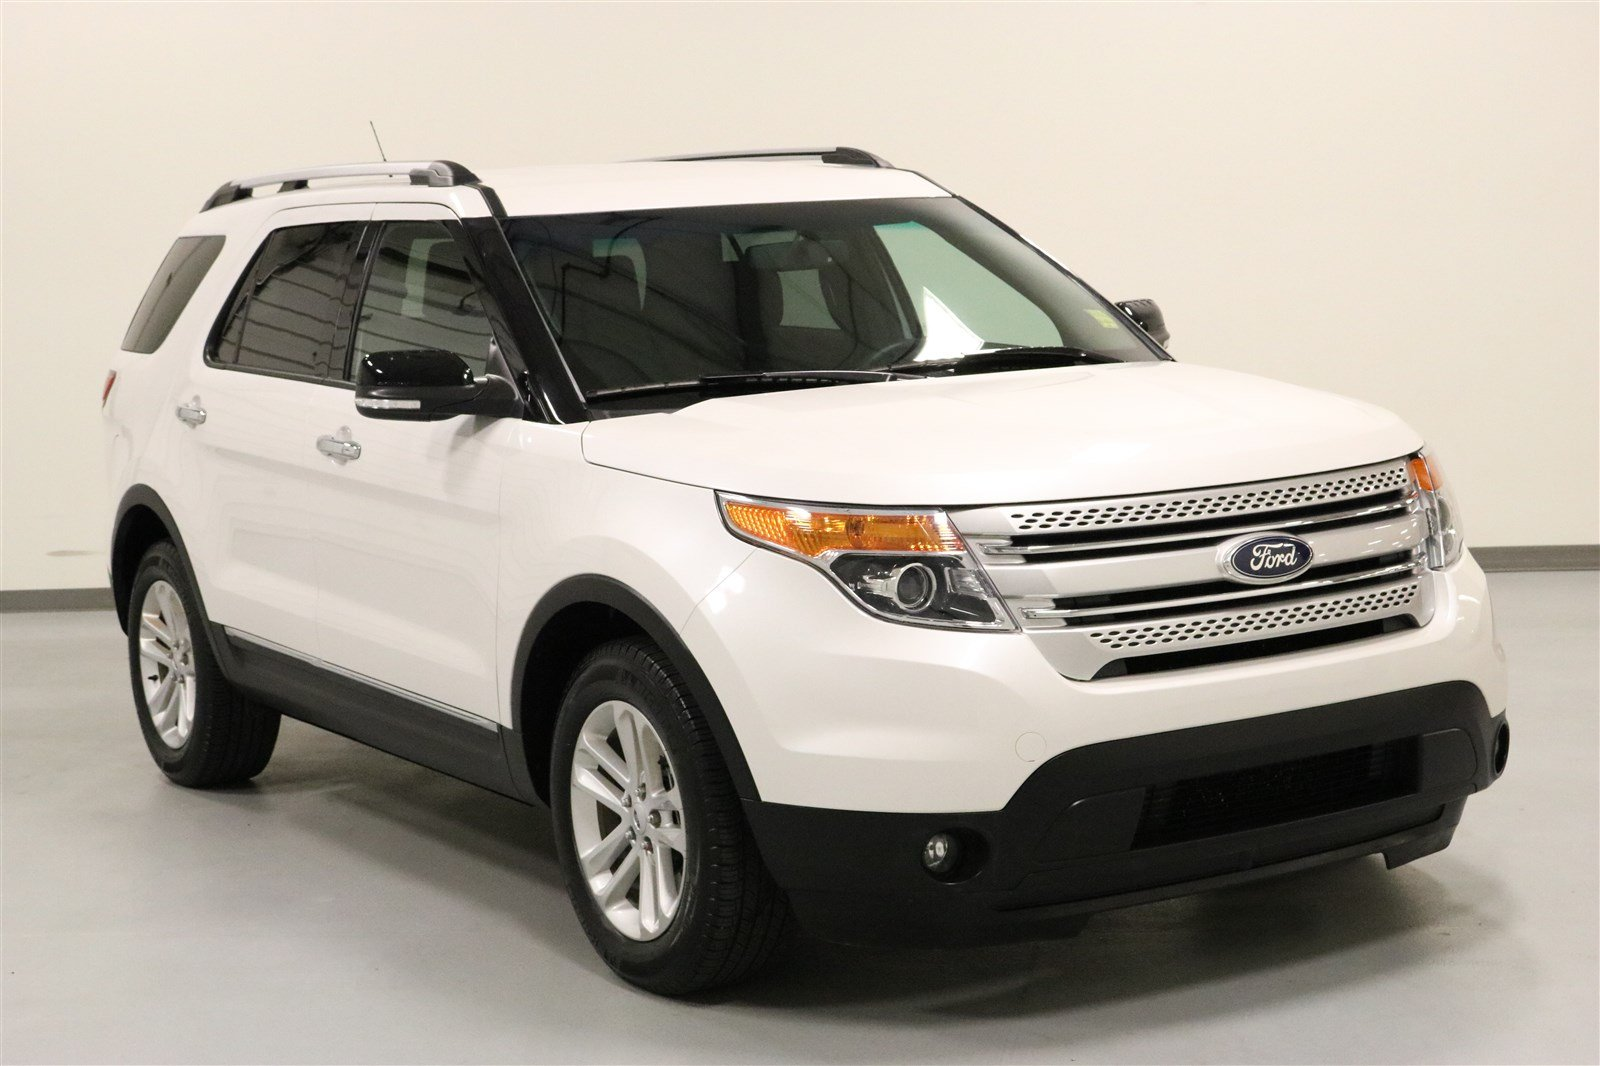 pre owned 2015 ford explorer for sale in amarillo tx 44103. Black Bedroom Furniture Sets. Home Design Ideas